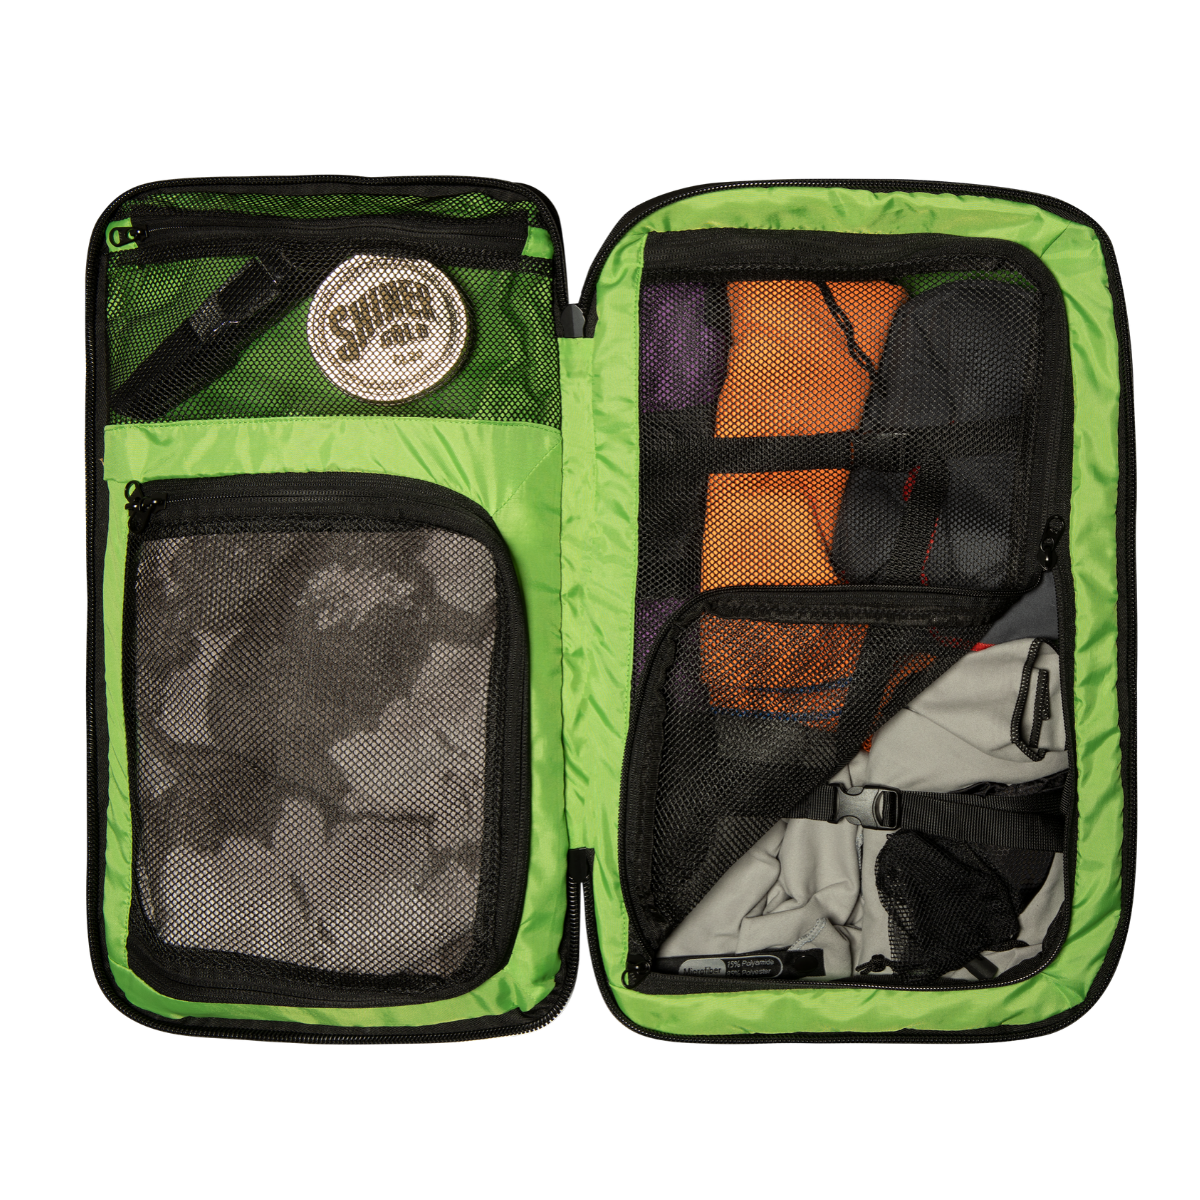 NEW! The Island Hopper Travel Backpack